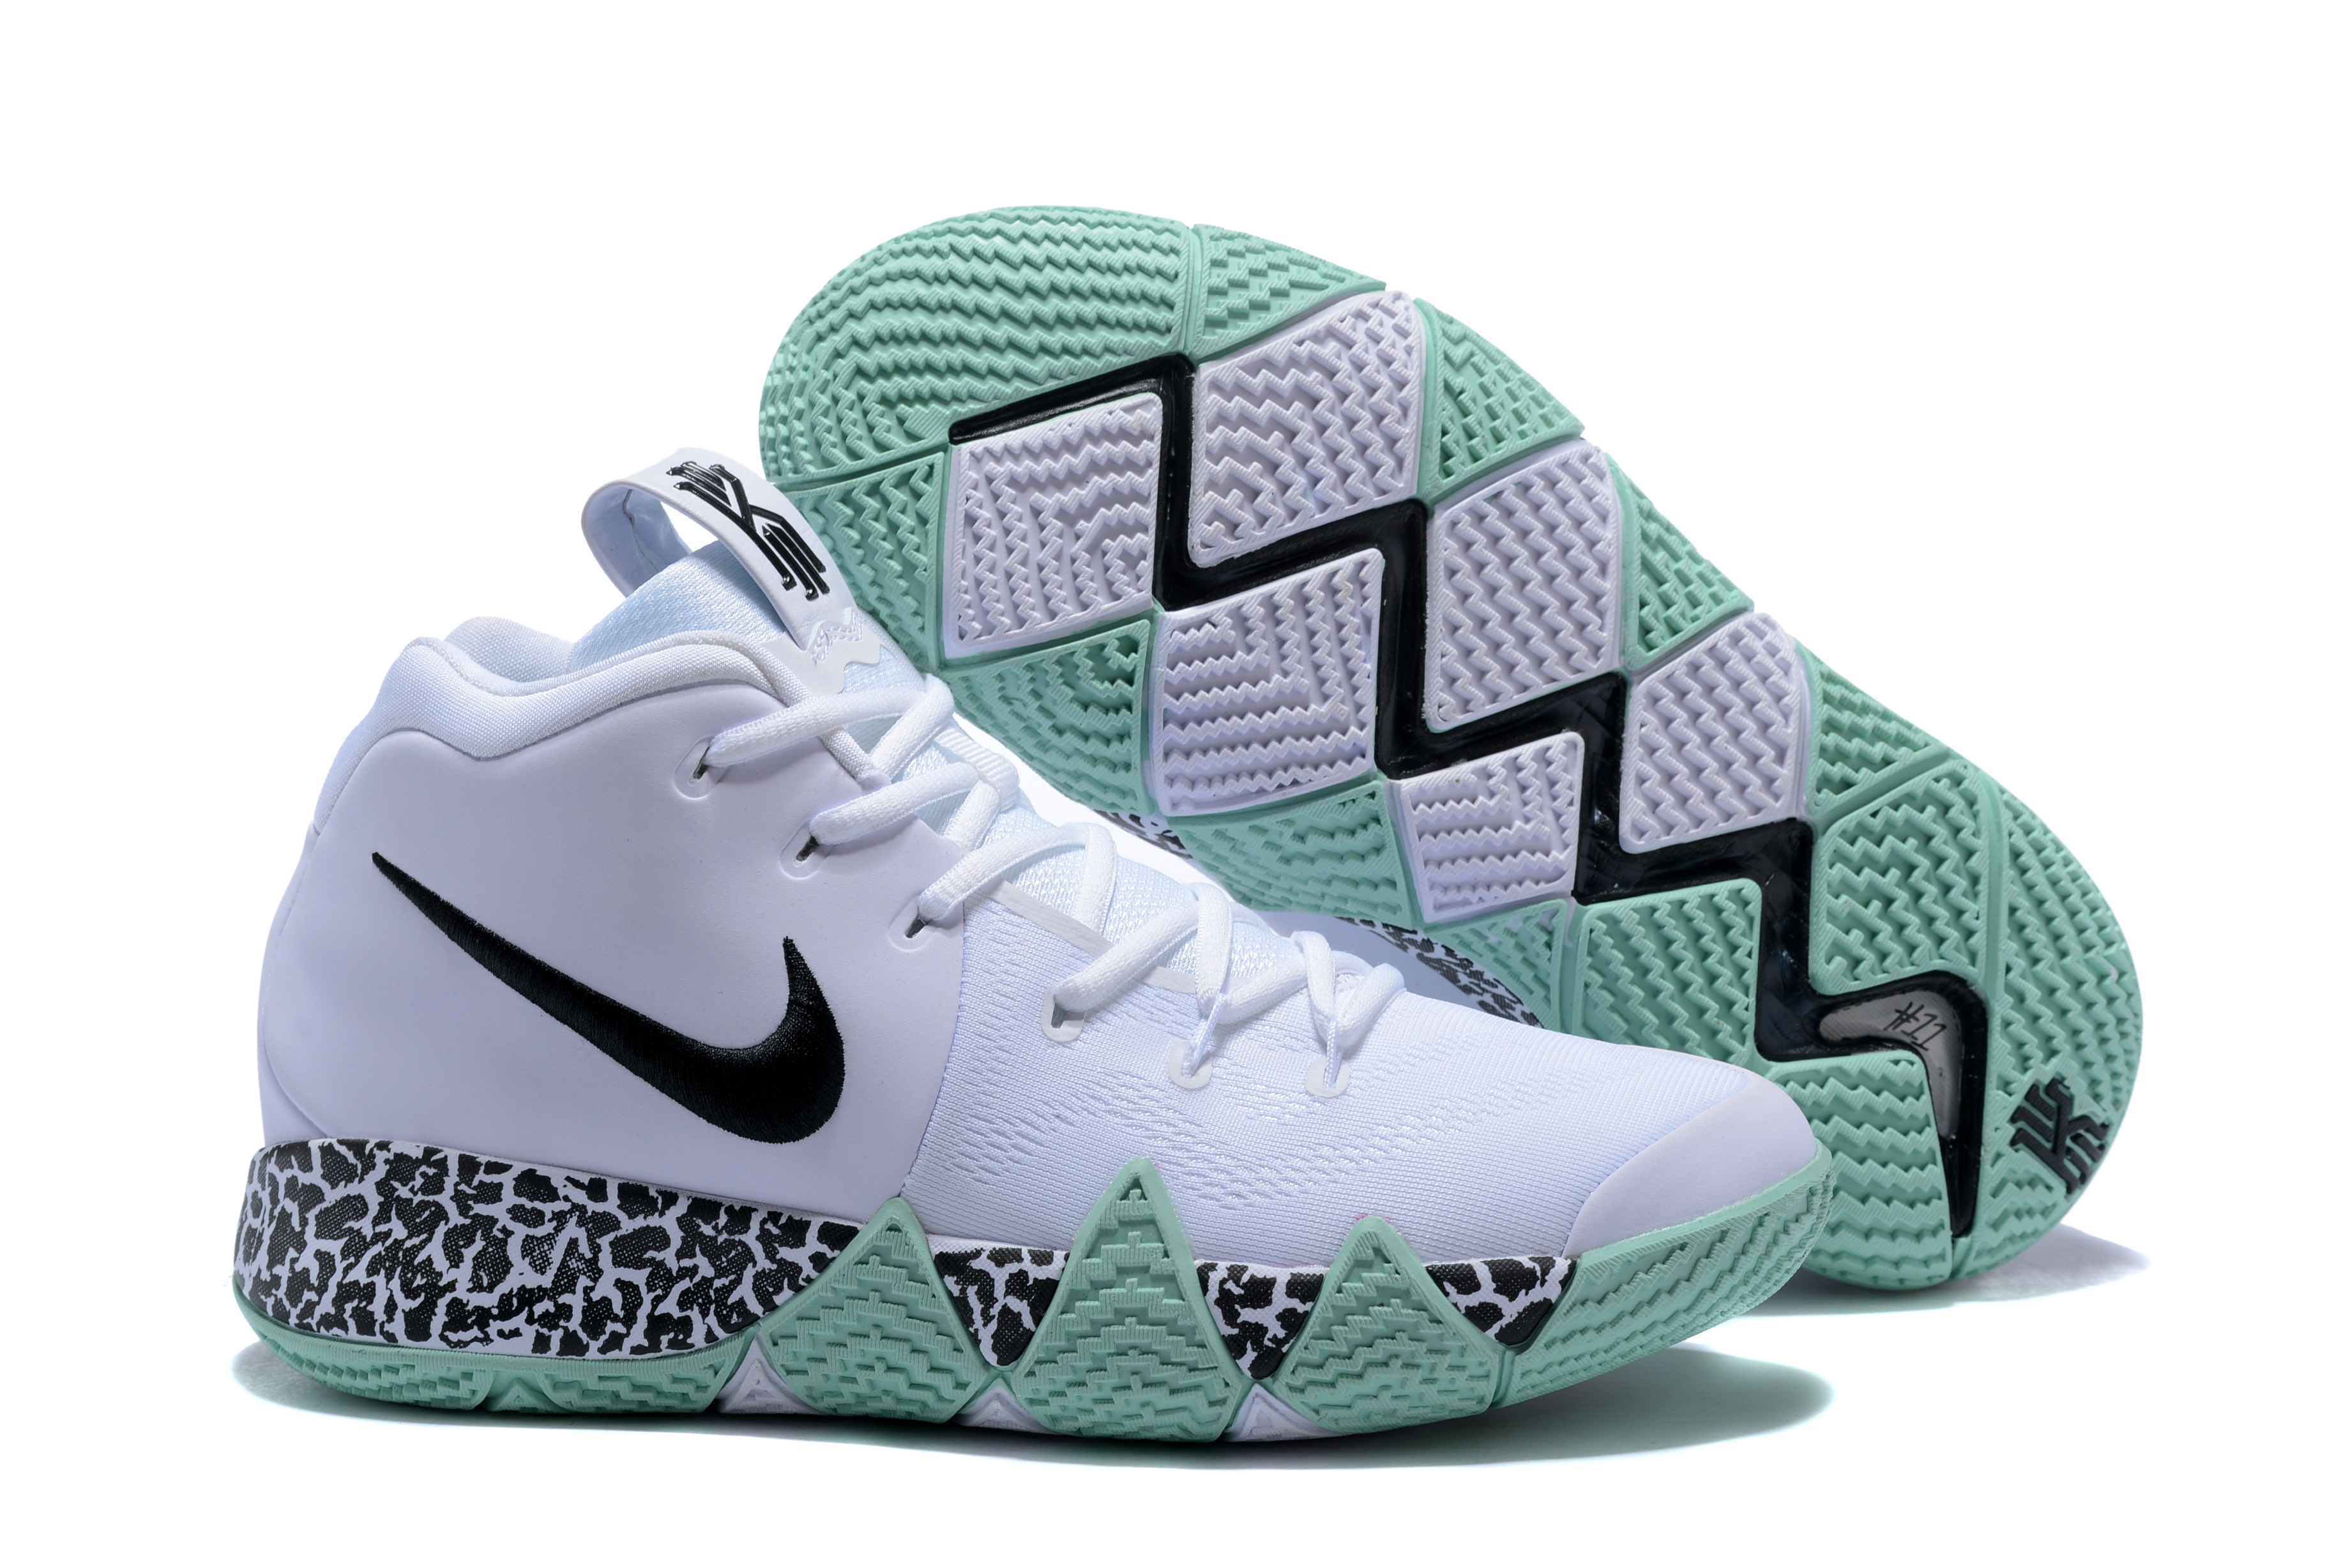 New Nike Kyrie 4 White Green Shoes